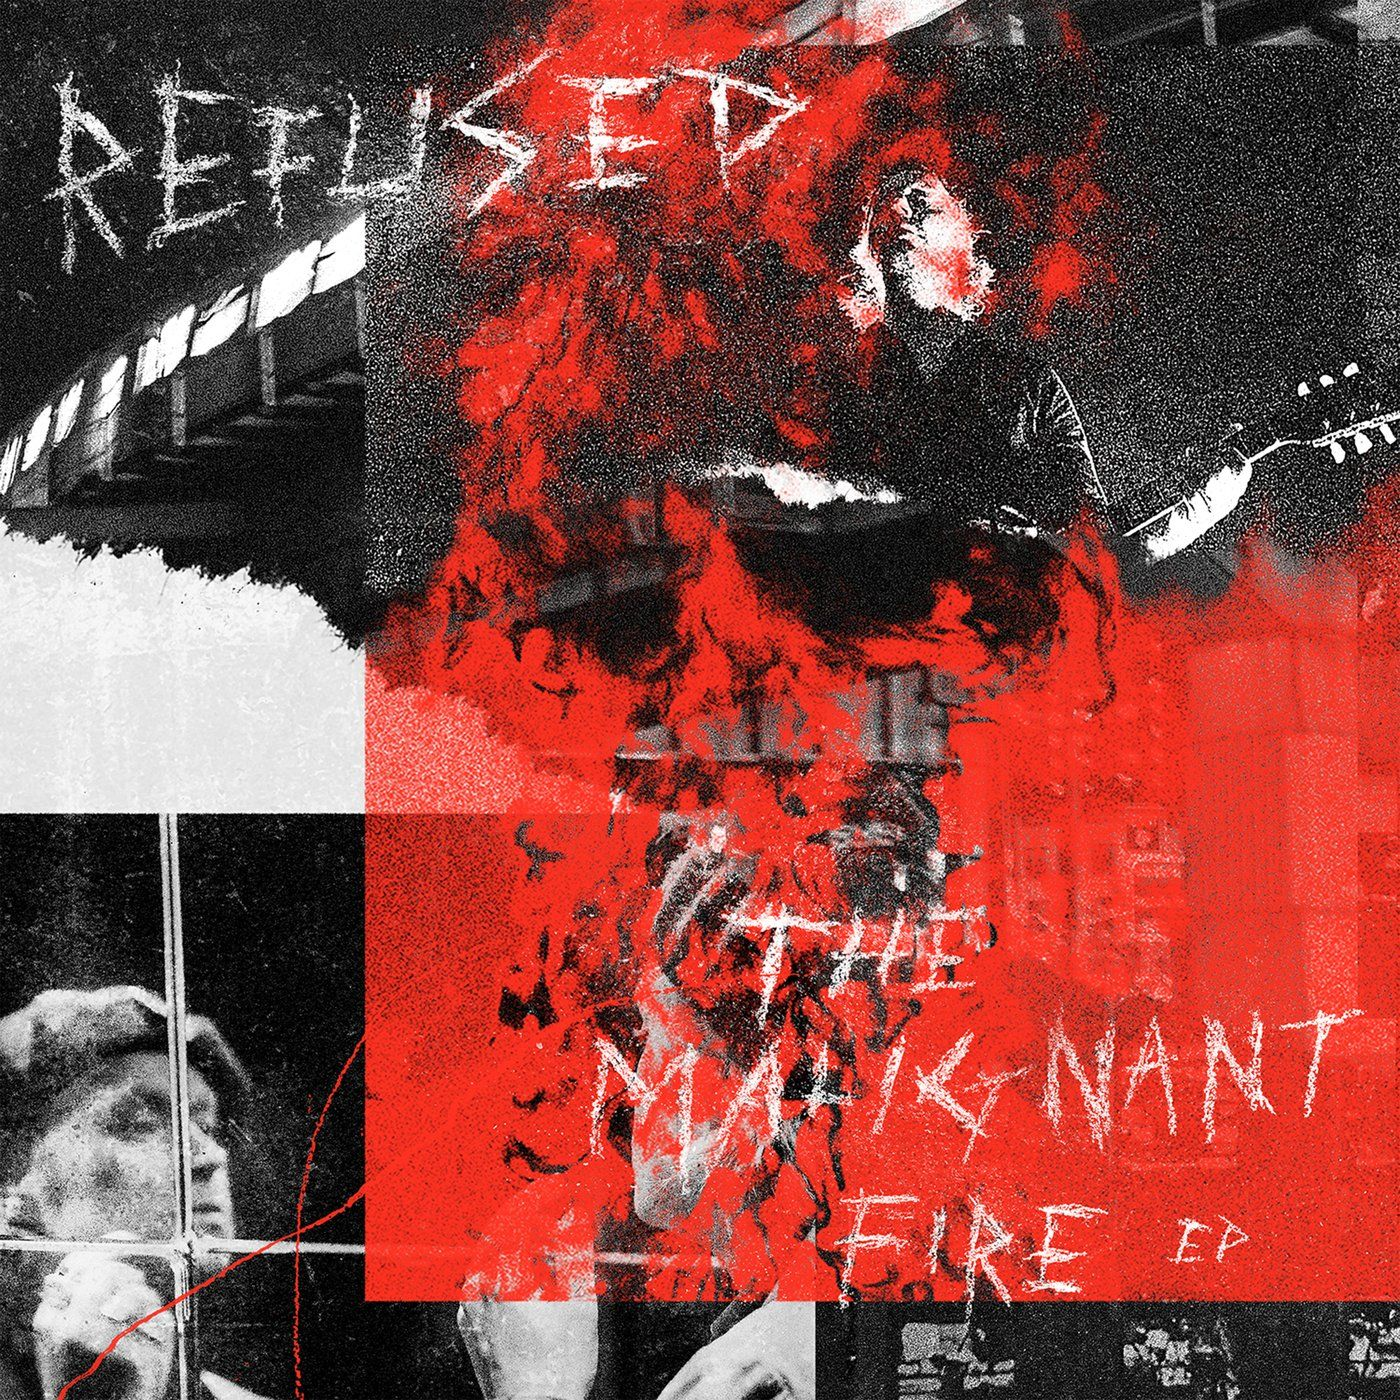 Refused - Born On The Outs [single] (2020)